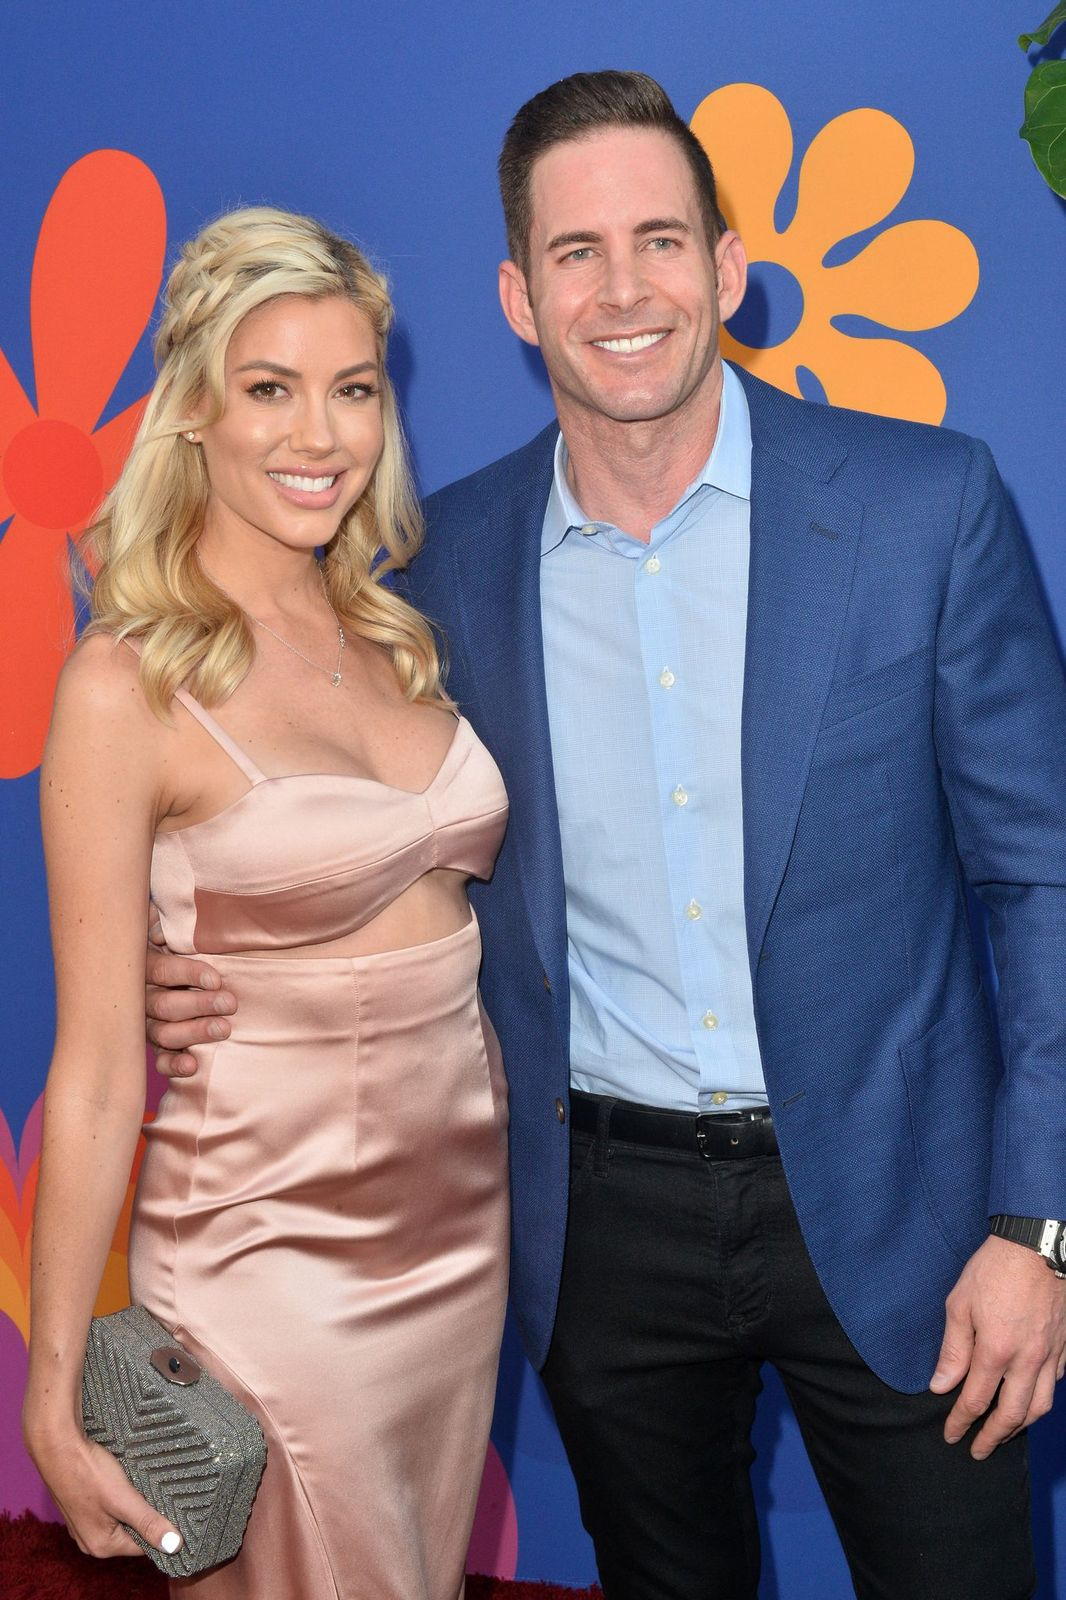 Heather Rae Young and Tarek El Moussa at the Premiere of HGTV's 'A Very Brady Renovation' at The Garland Hotel on September 05, 2019 in North Hollywood, California | Photo: Getty Images